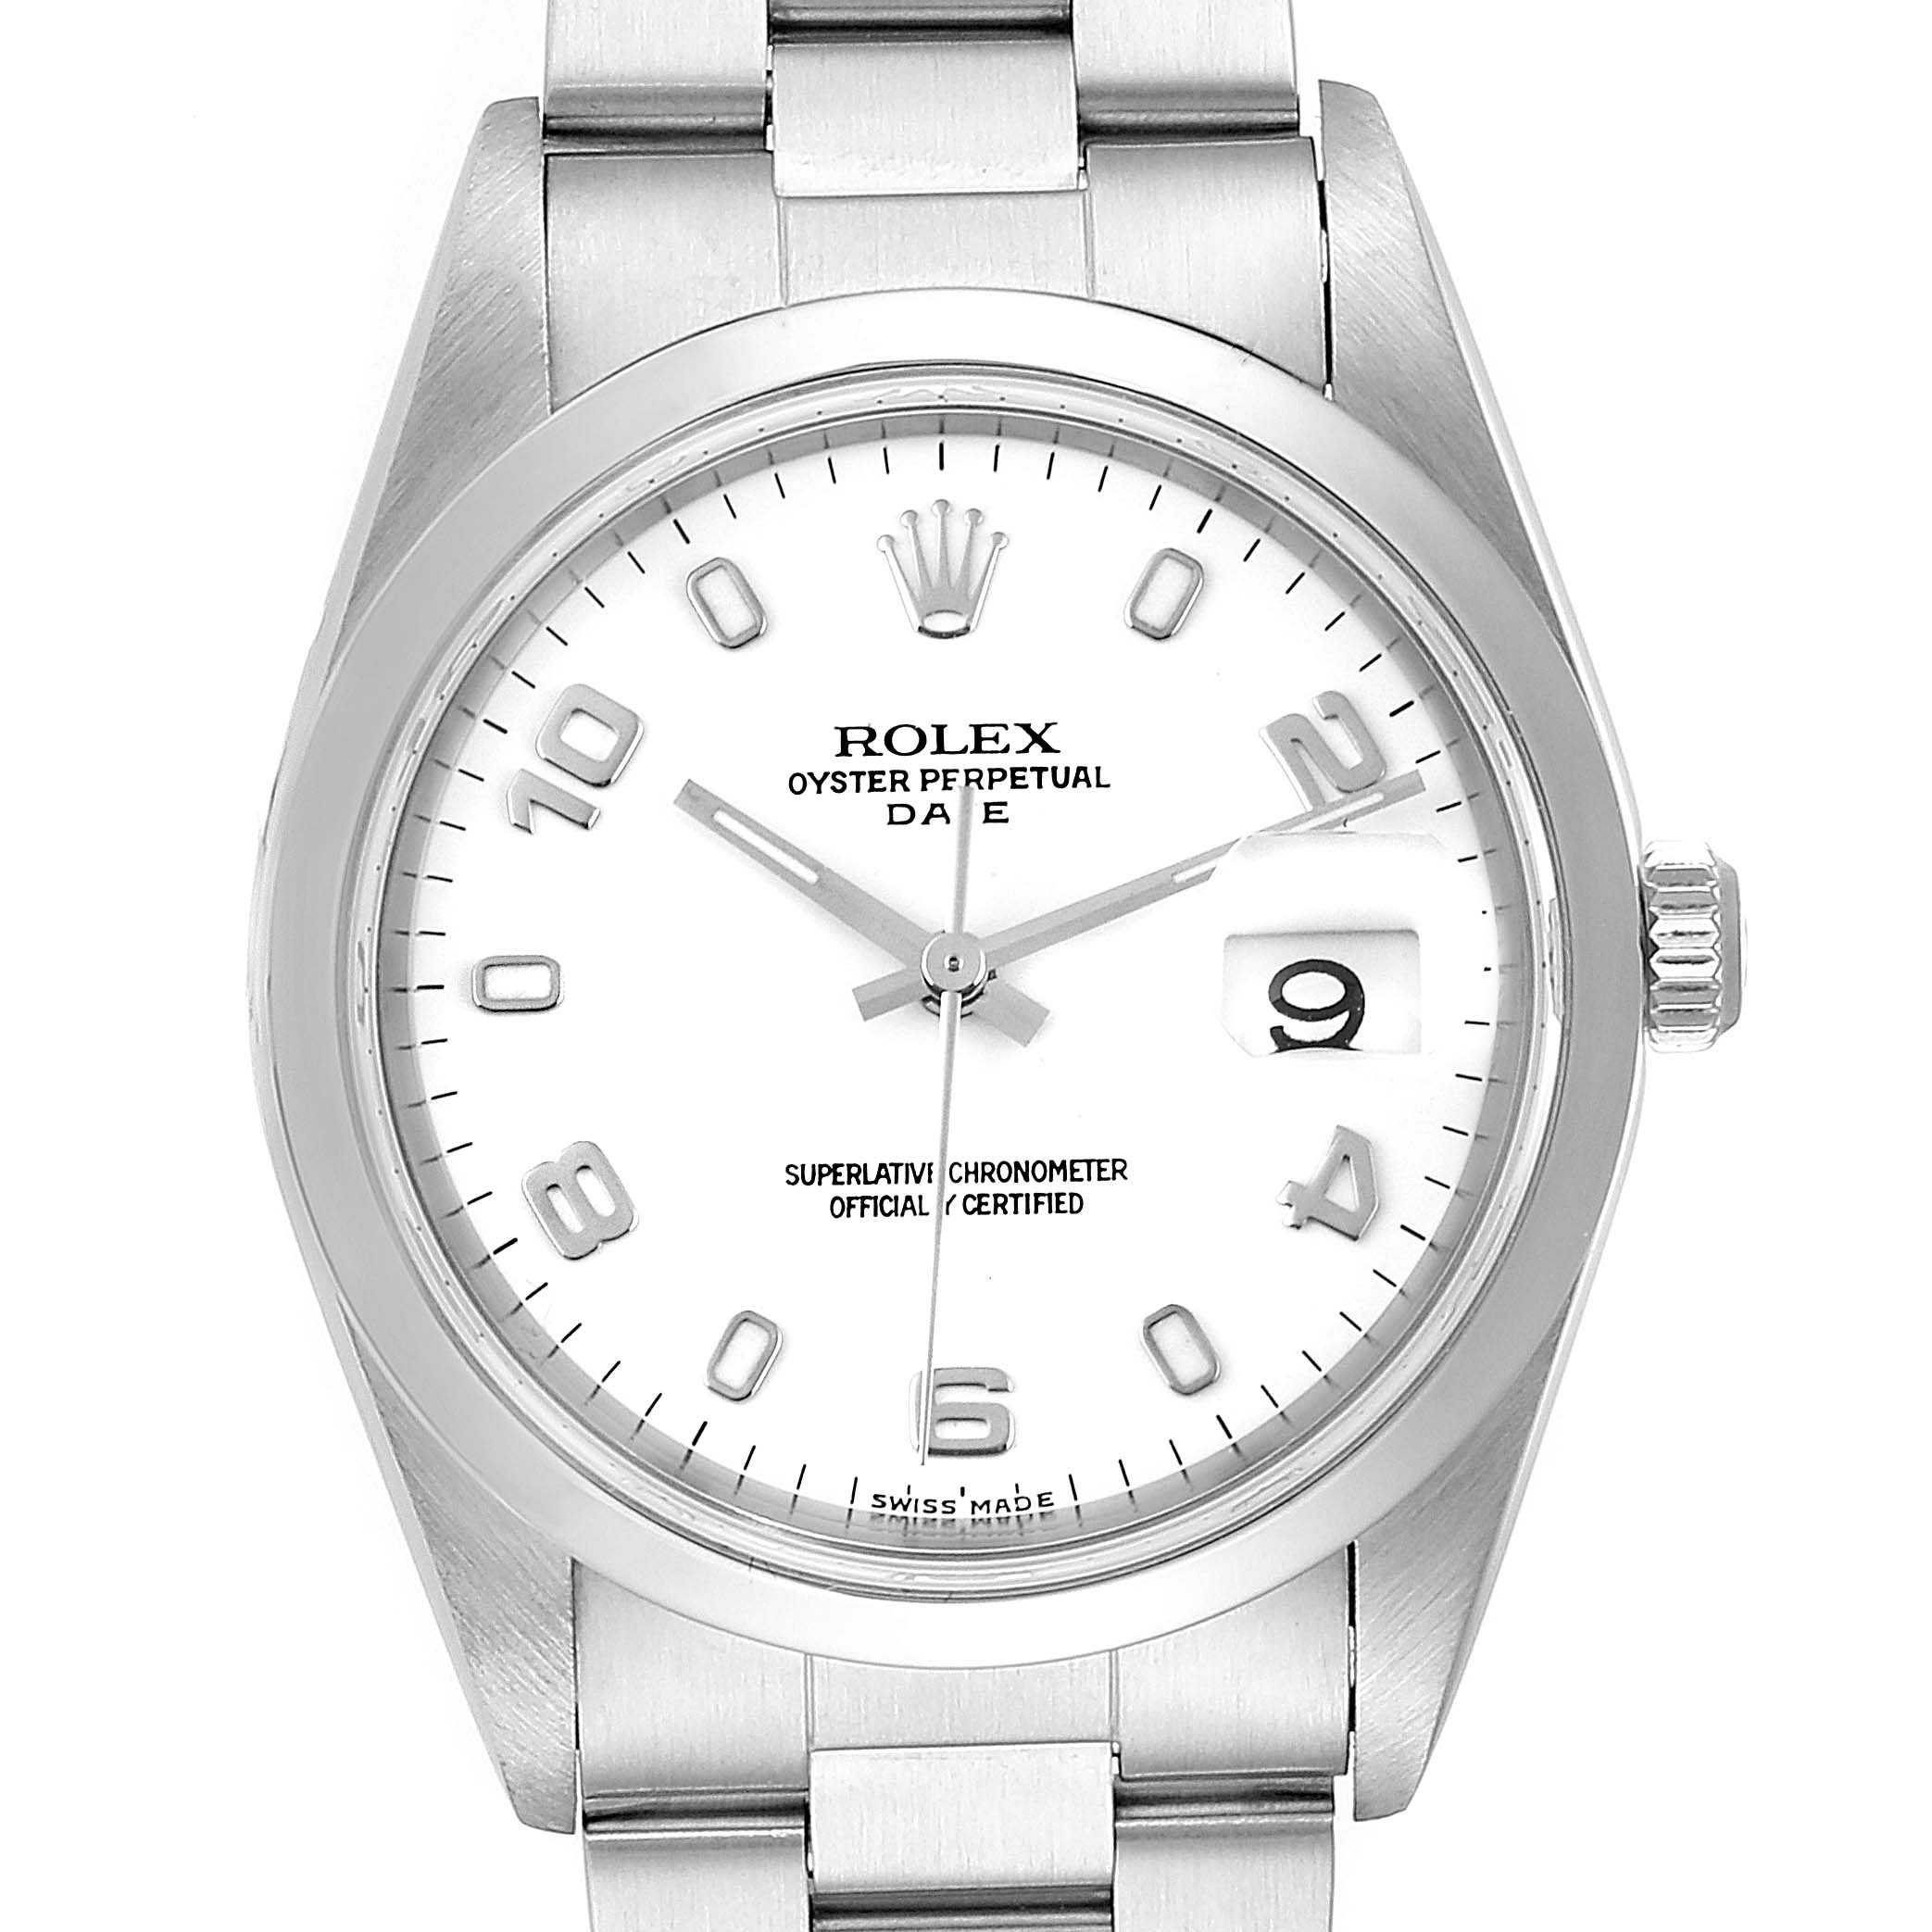 Rolex Date White Dial Oyster Bracelet Steel Mens Watch 15200 Box Papers